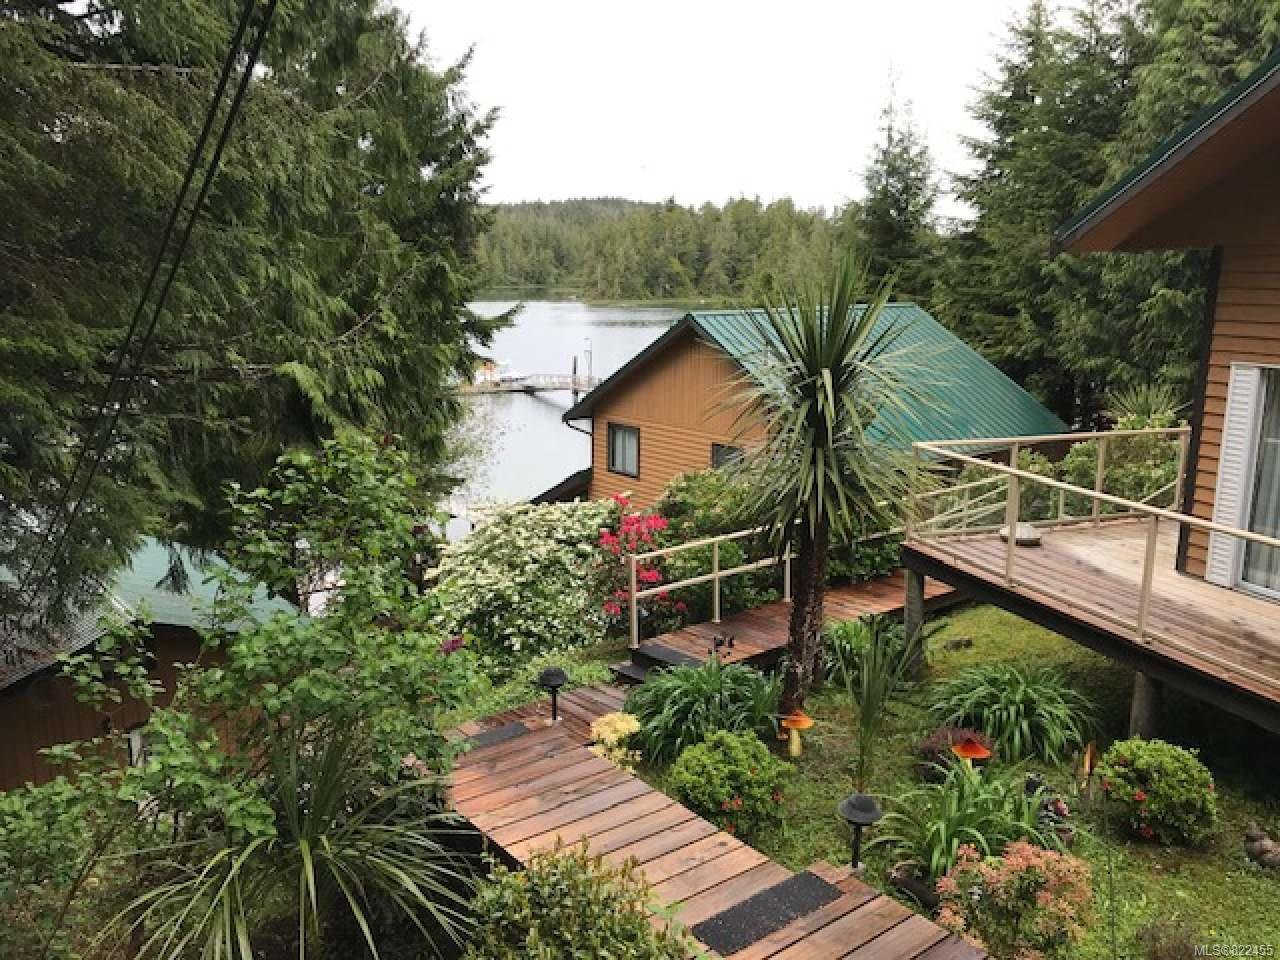 Main Photo: 34 South Bamfield Rd in BAMFIELD: PA Bamfield Business for sale (Port Alberni)  : MLS®# 822455